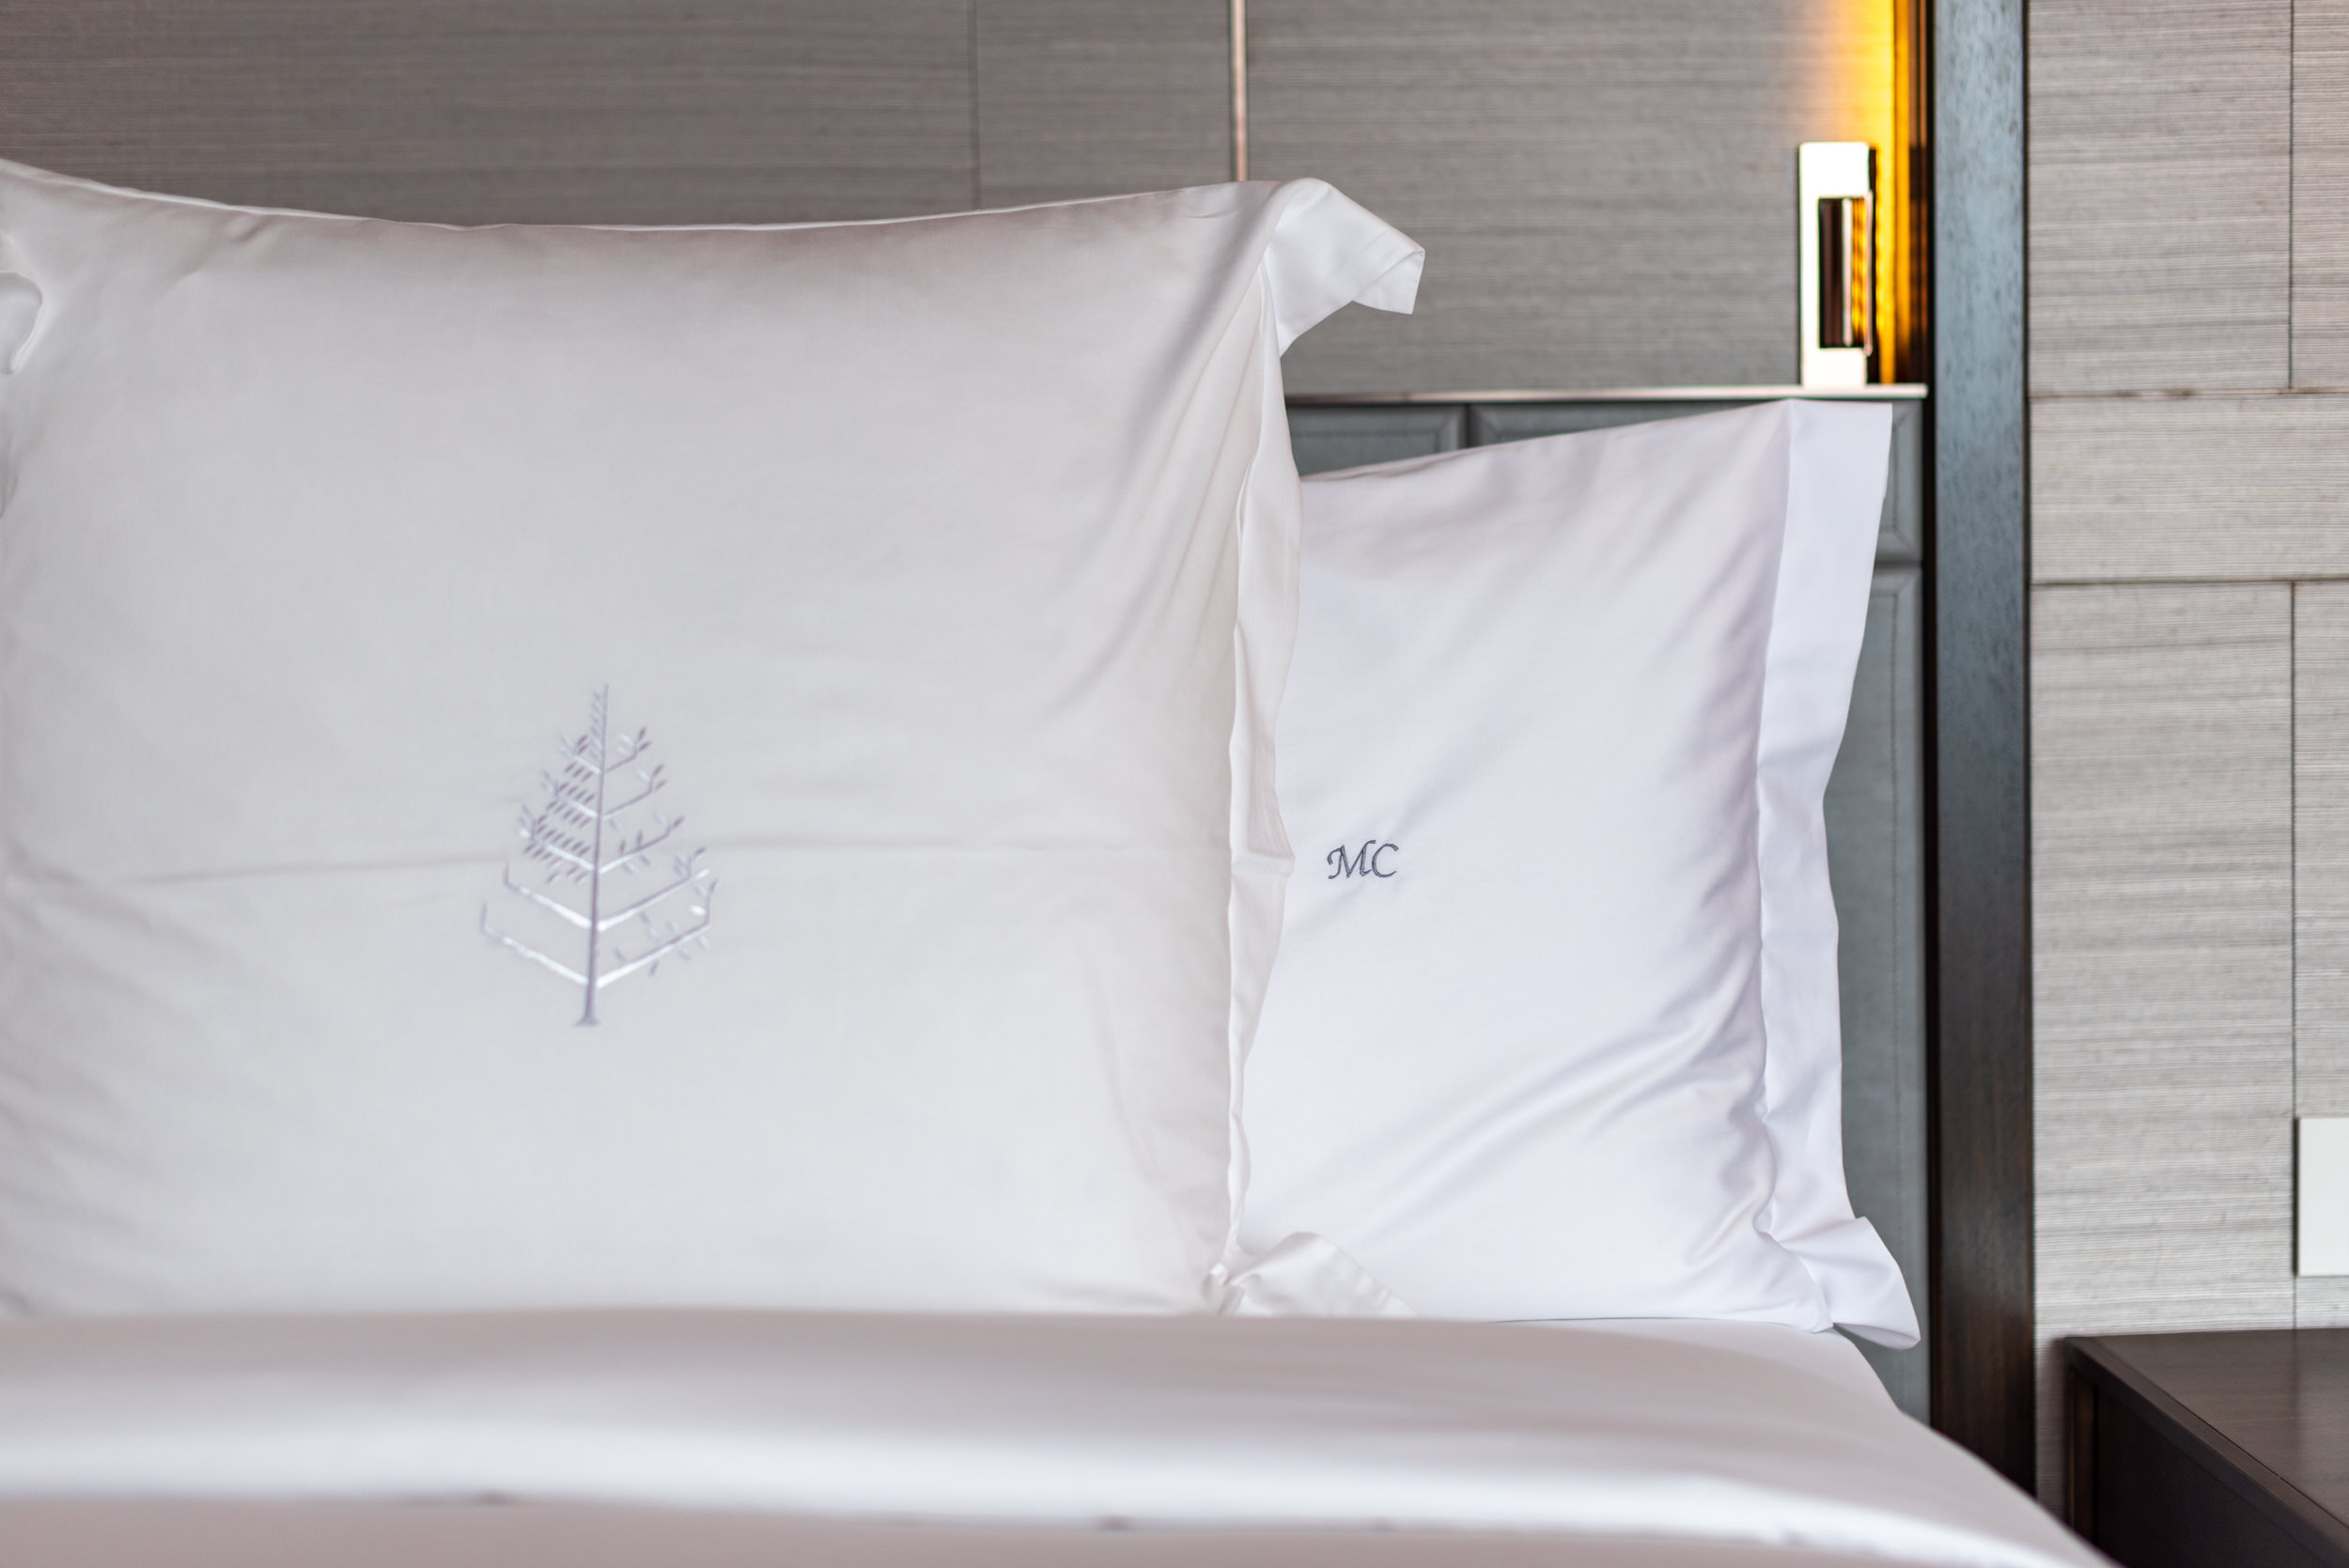 Customised Pillow with Initials   Ambassador One-Bedroom Suite - Four Seasons Hotel Singapore